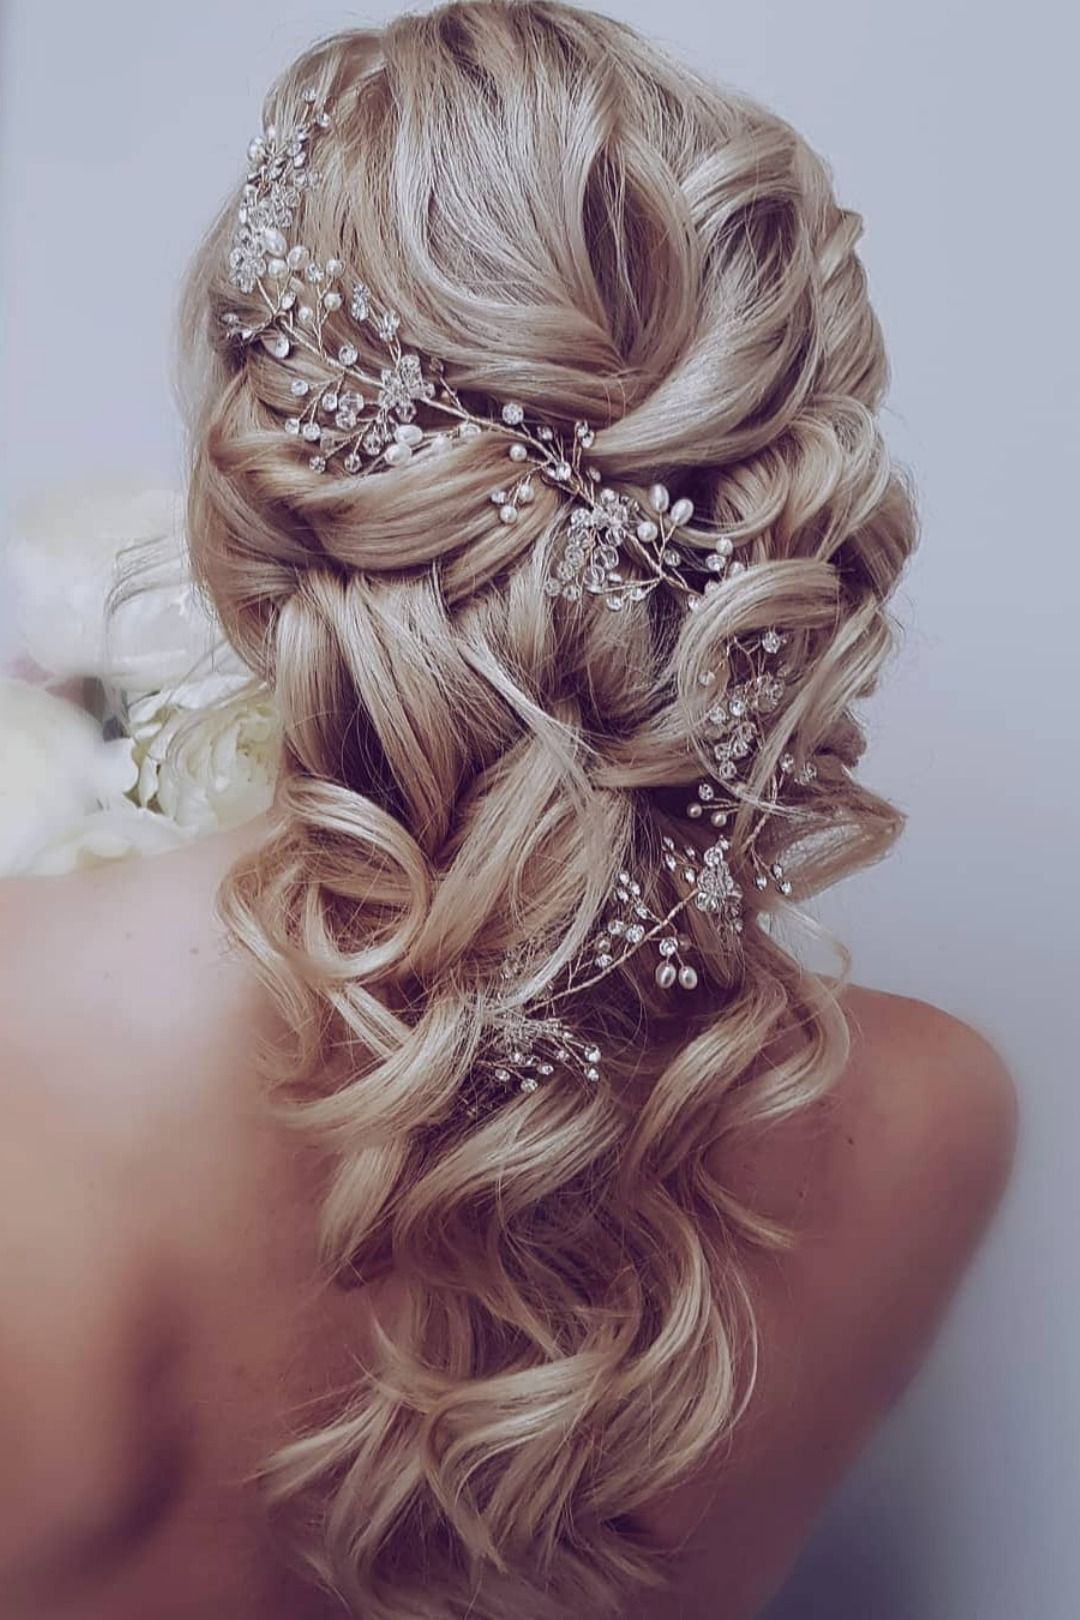 Have you fall in love with the dreamy wedding hairstyle